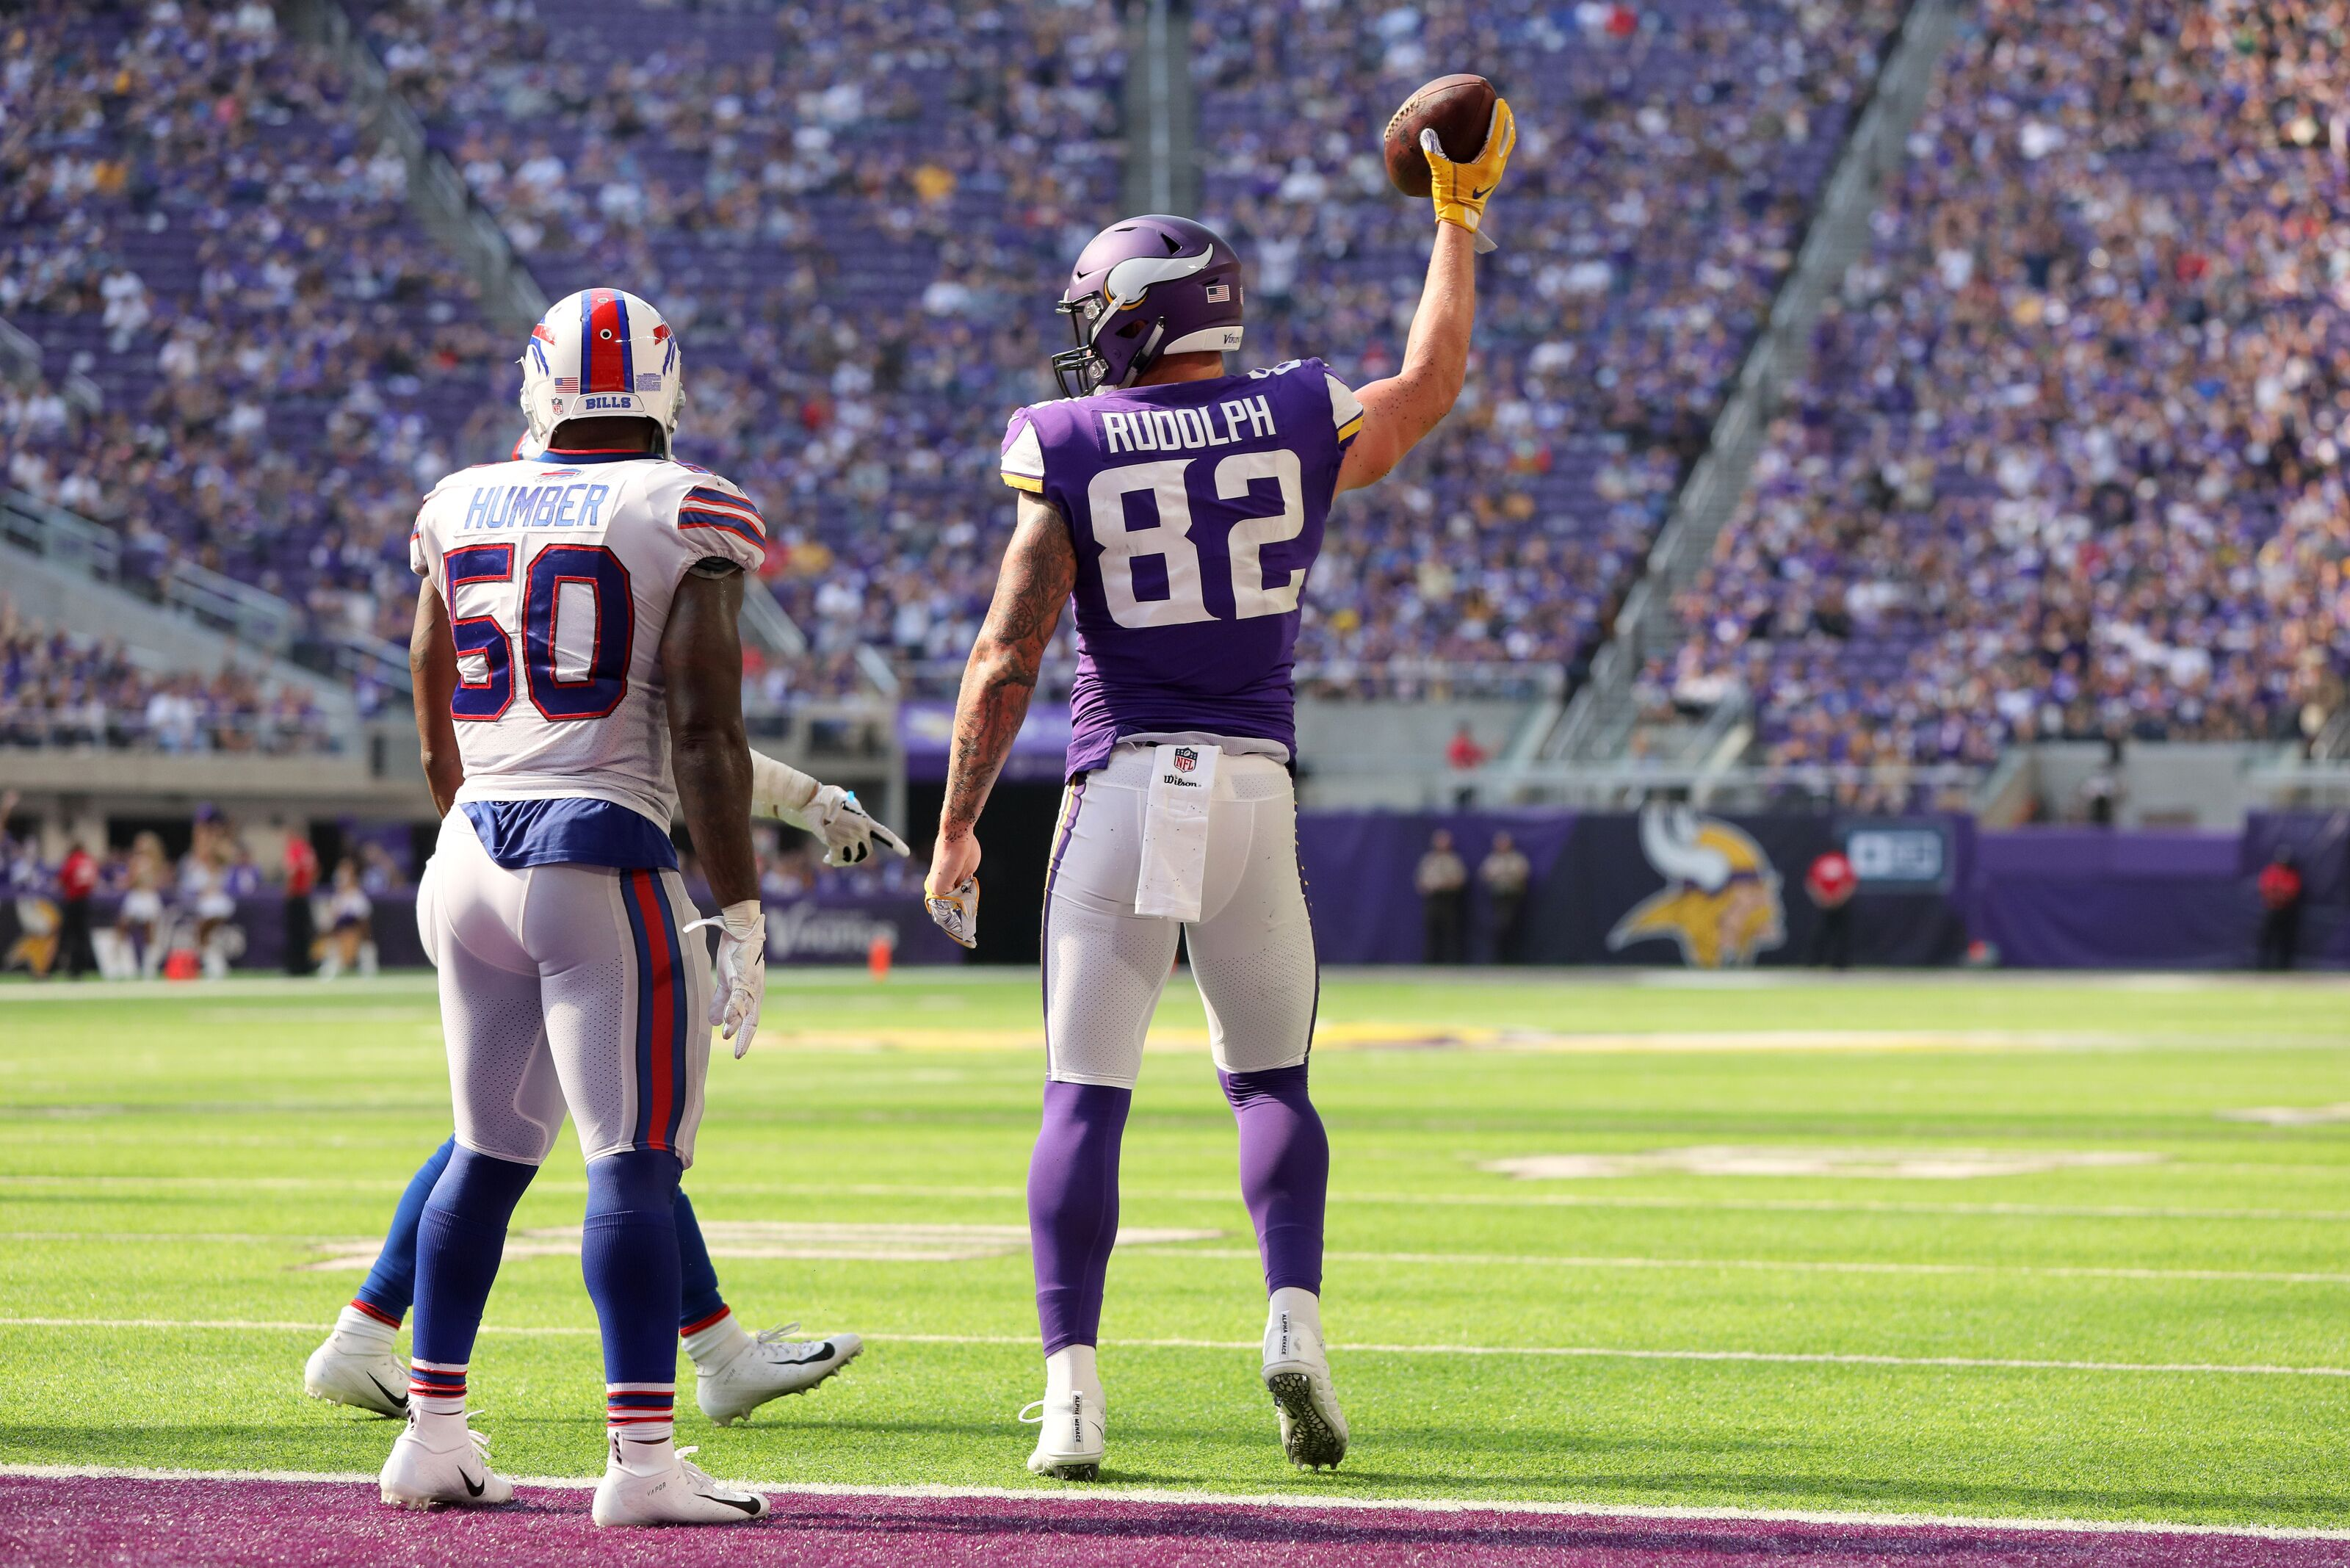 dac0f147b2d Could Kyle Rudolph end up with the Buffalo Bills in 2019